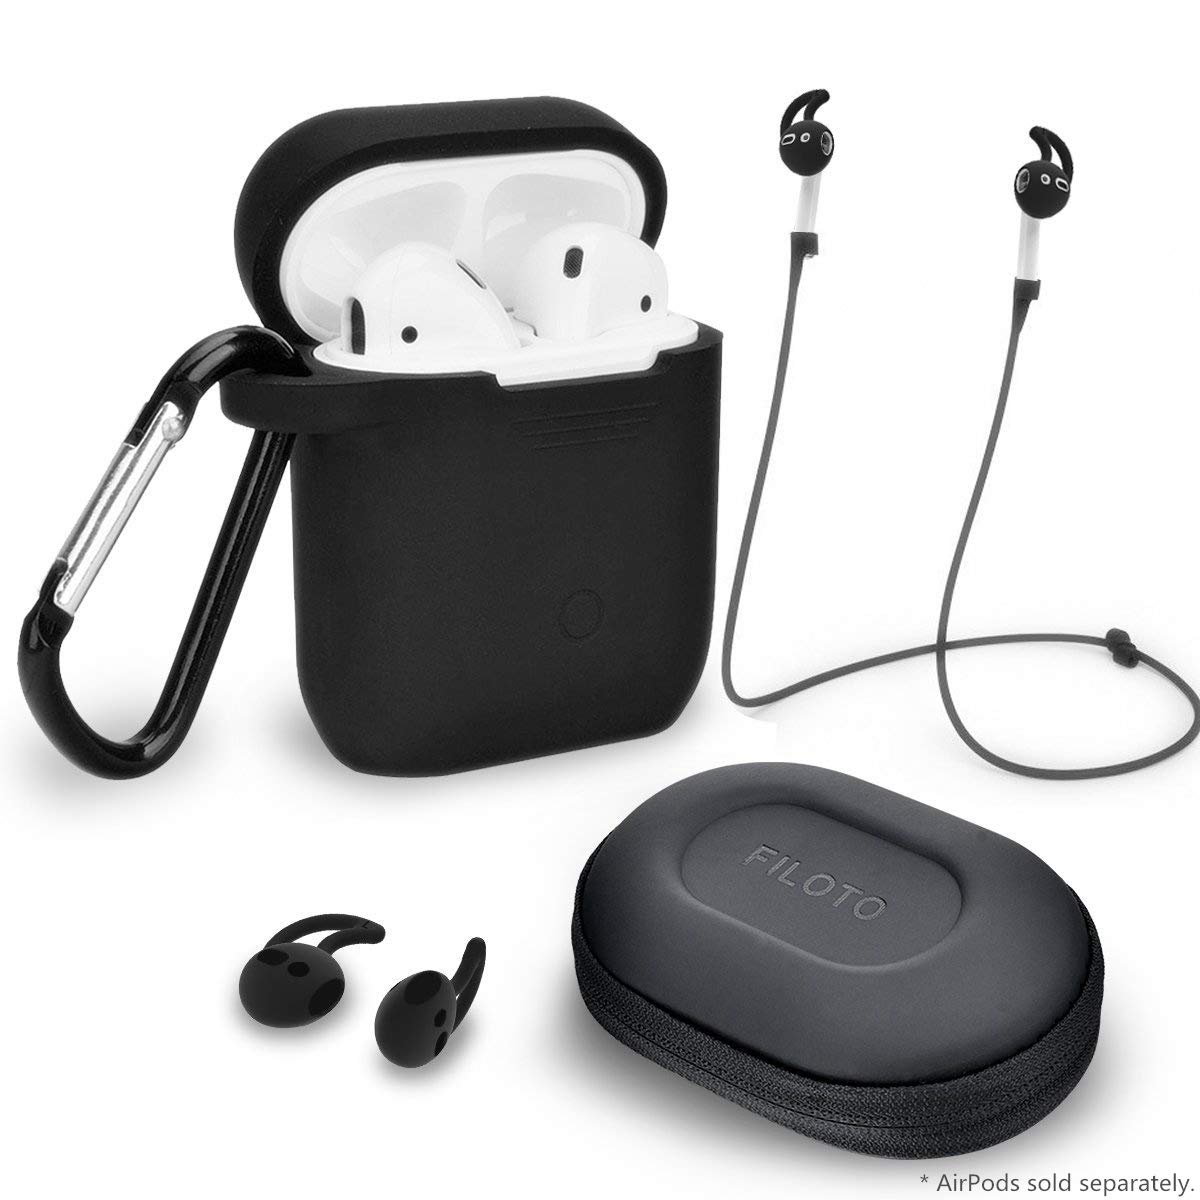 Airpods Accessories Set, Filoto Airpods Silicone Case Cover with Keychain/Strap/Earhooks/Waterproof Accessories Storage Travel Box for Apple Airpod (Black)